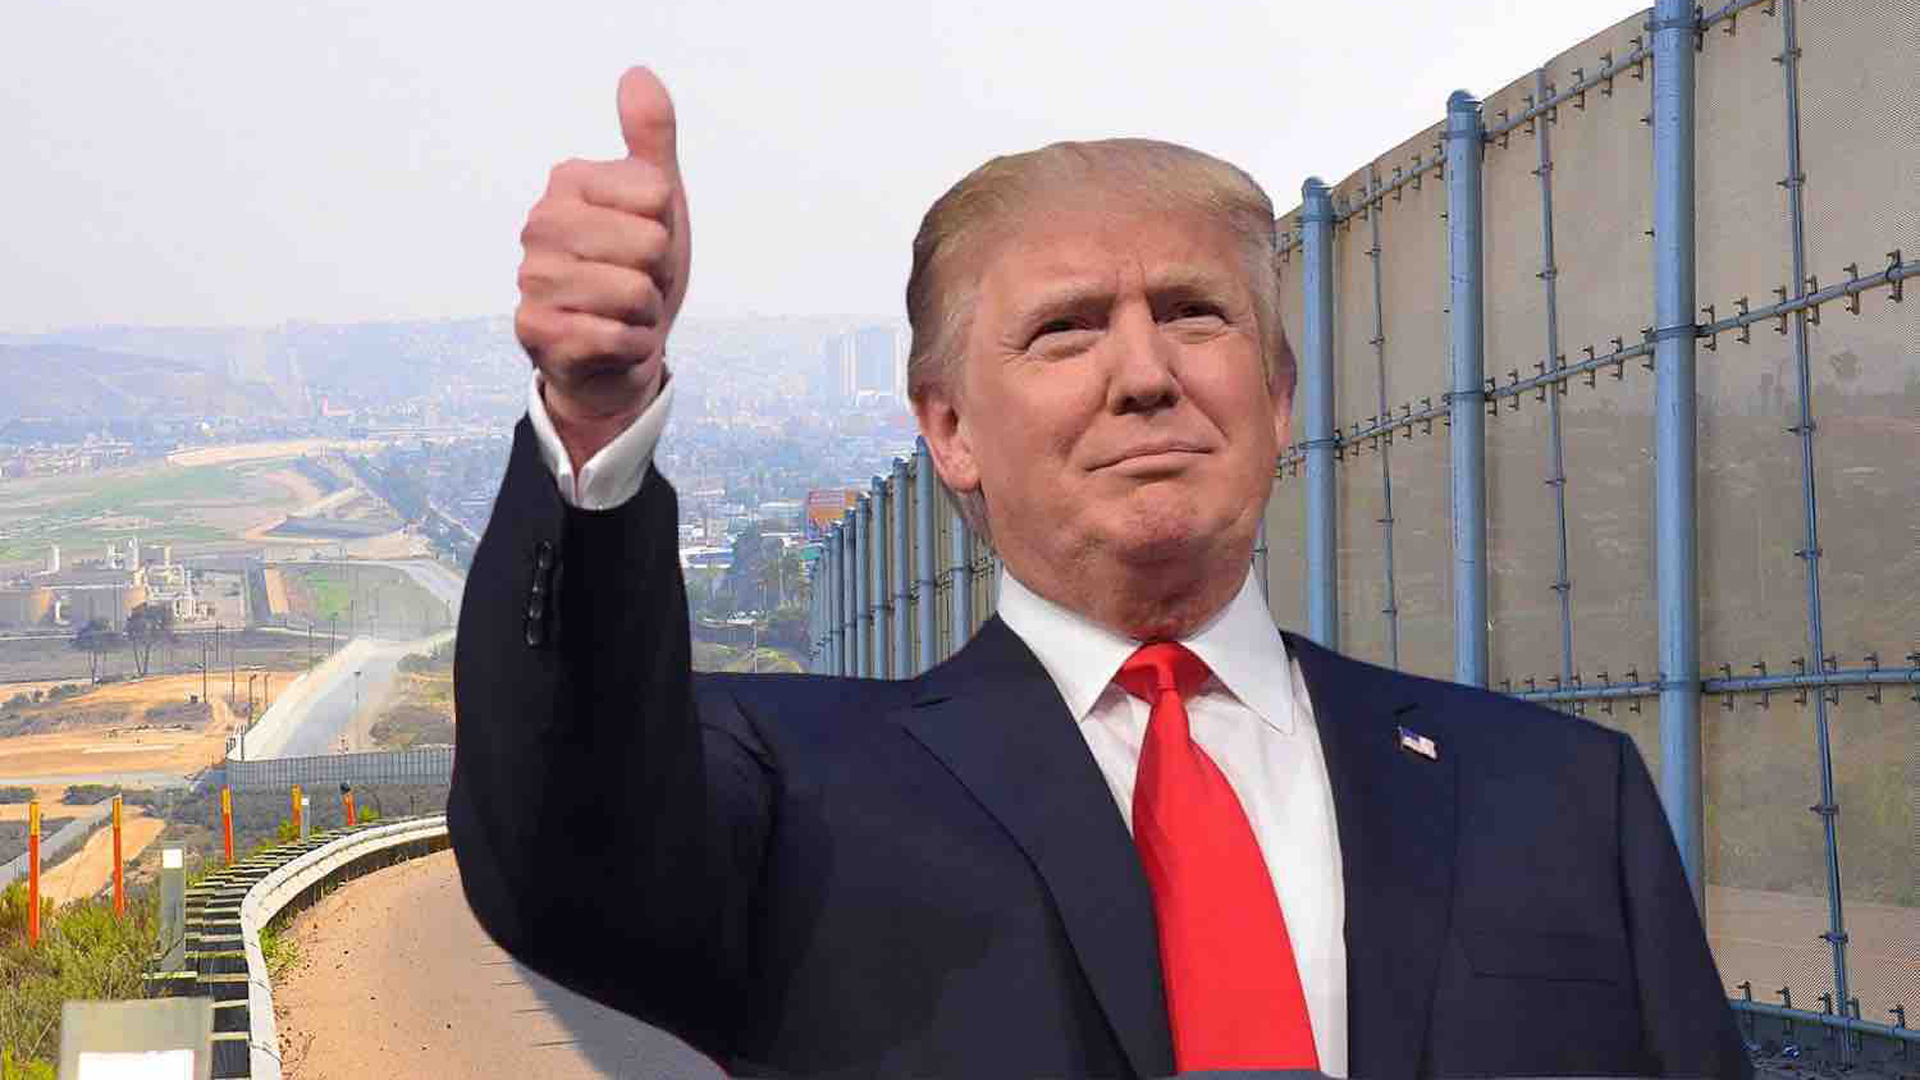 The feature photo of the GoFundMe account that's trying to raise money to build a wall along the U.S.-Mexico border.